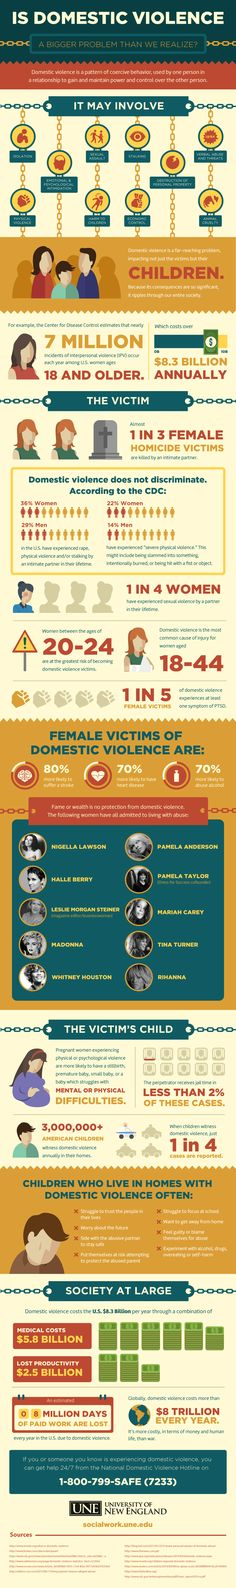 Is Domestic Violence a Bigger Problem Than We Realize? #Infographic #DomesticViolence